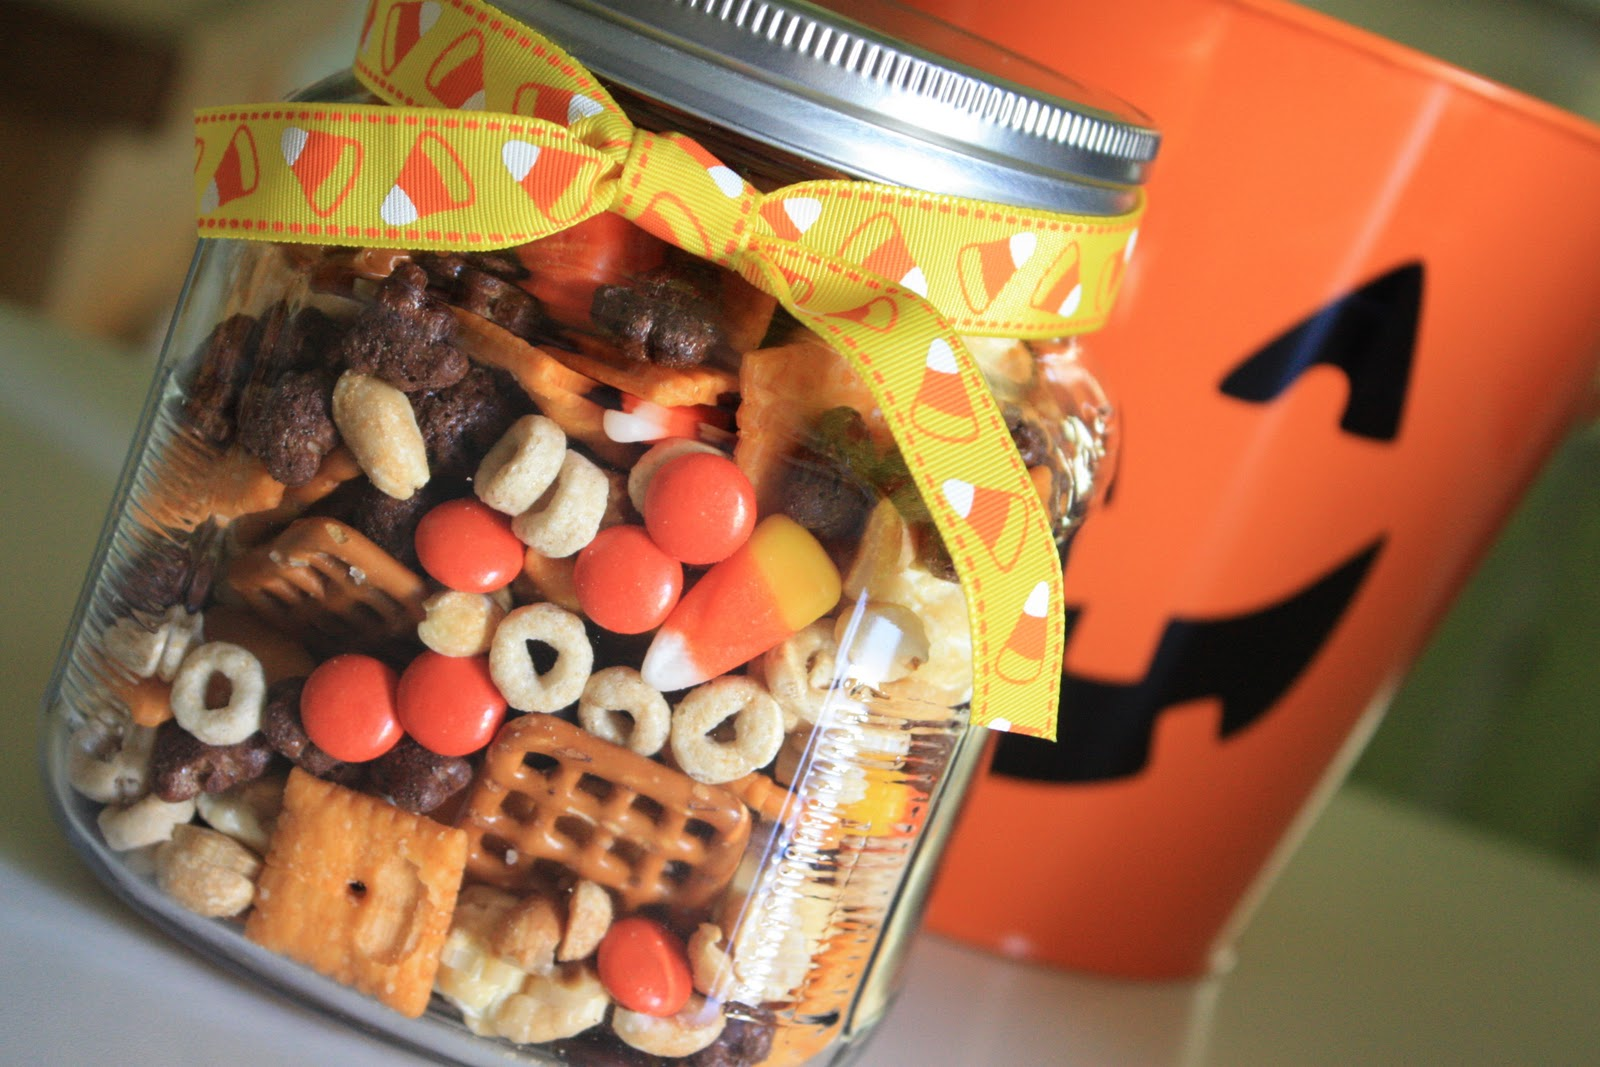 Munchkin munchies halloween snack mix for Halloween treats to make with kids